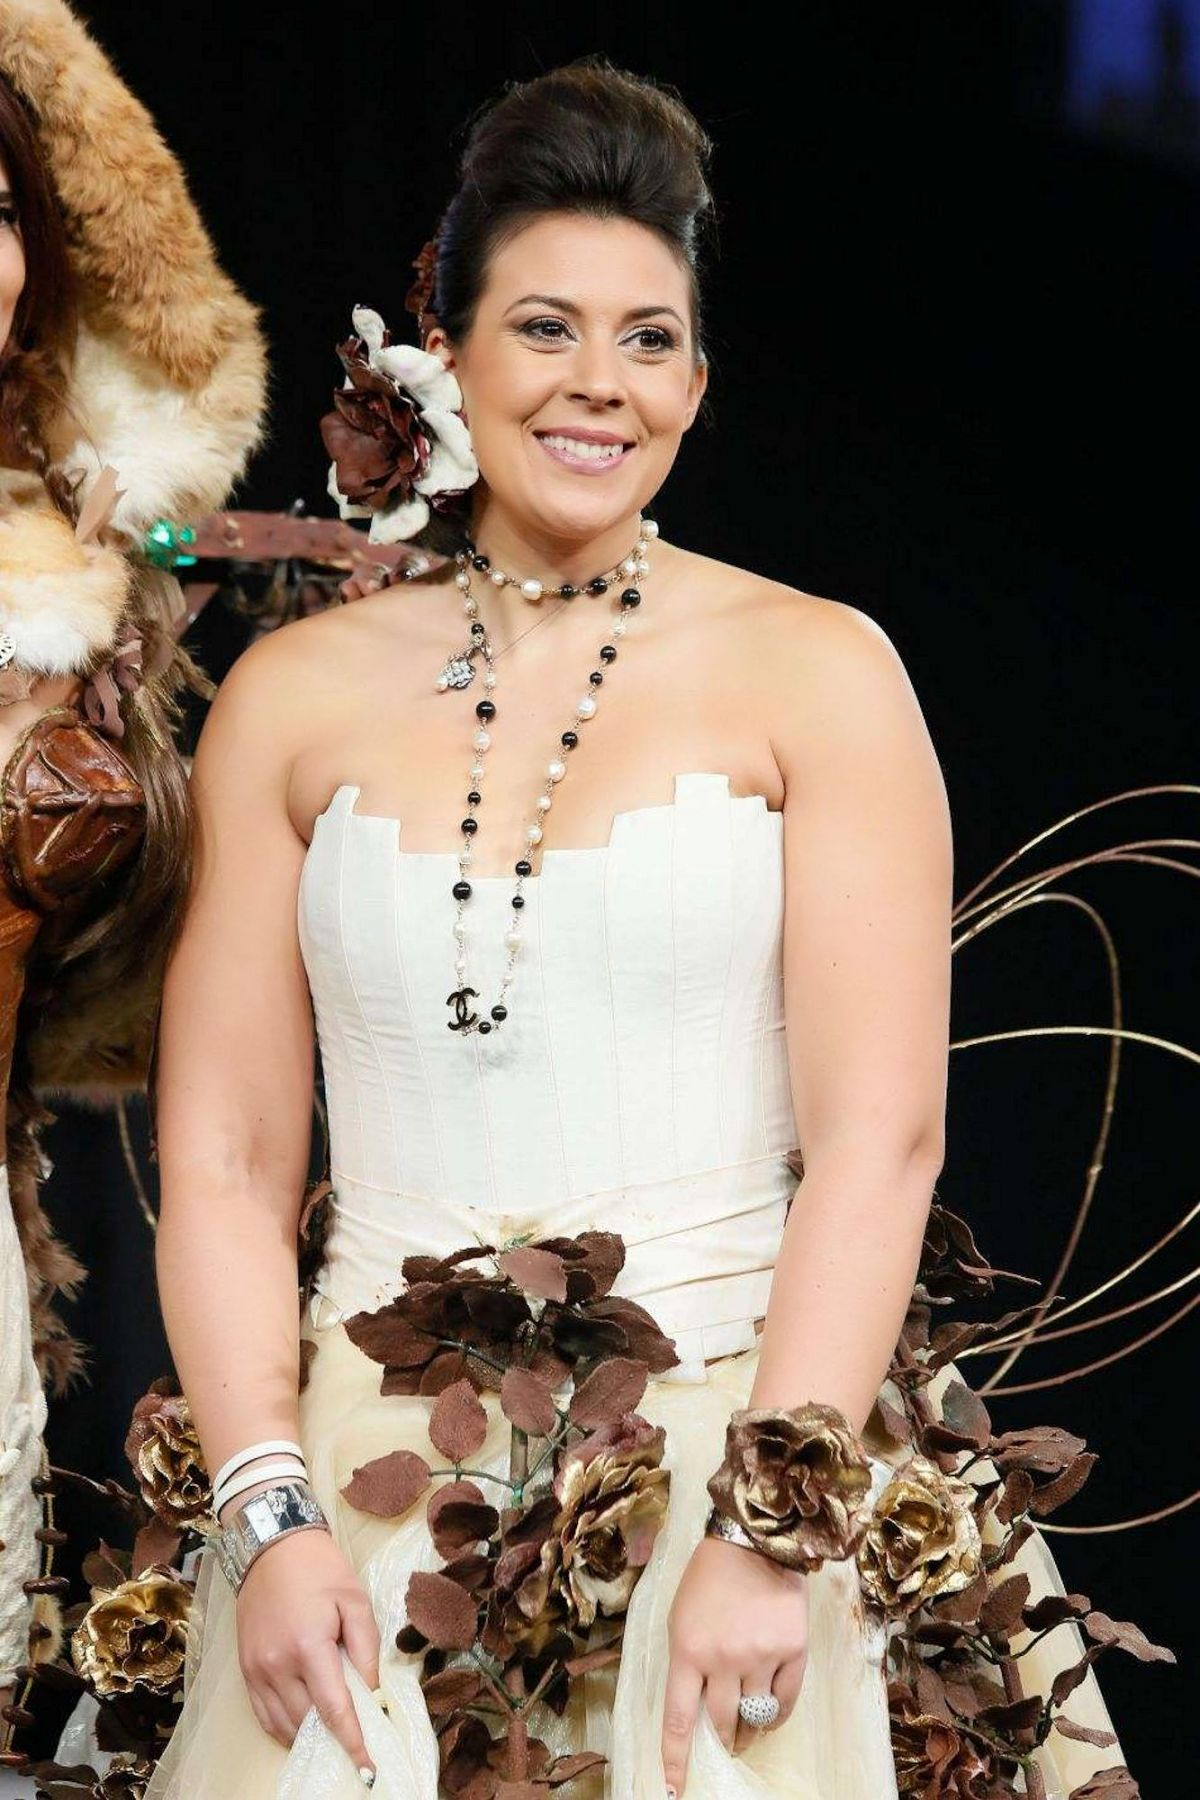 MARION BARTOLI at 20eme Salon du Chocolat in Paris